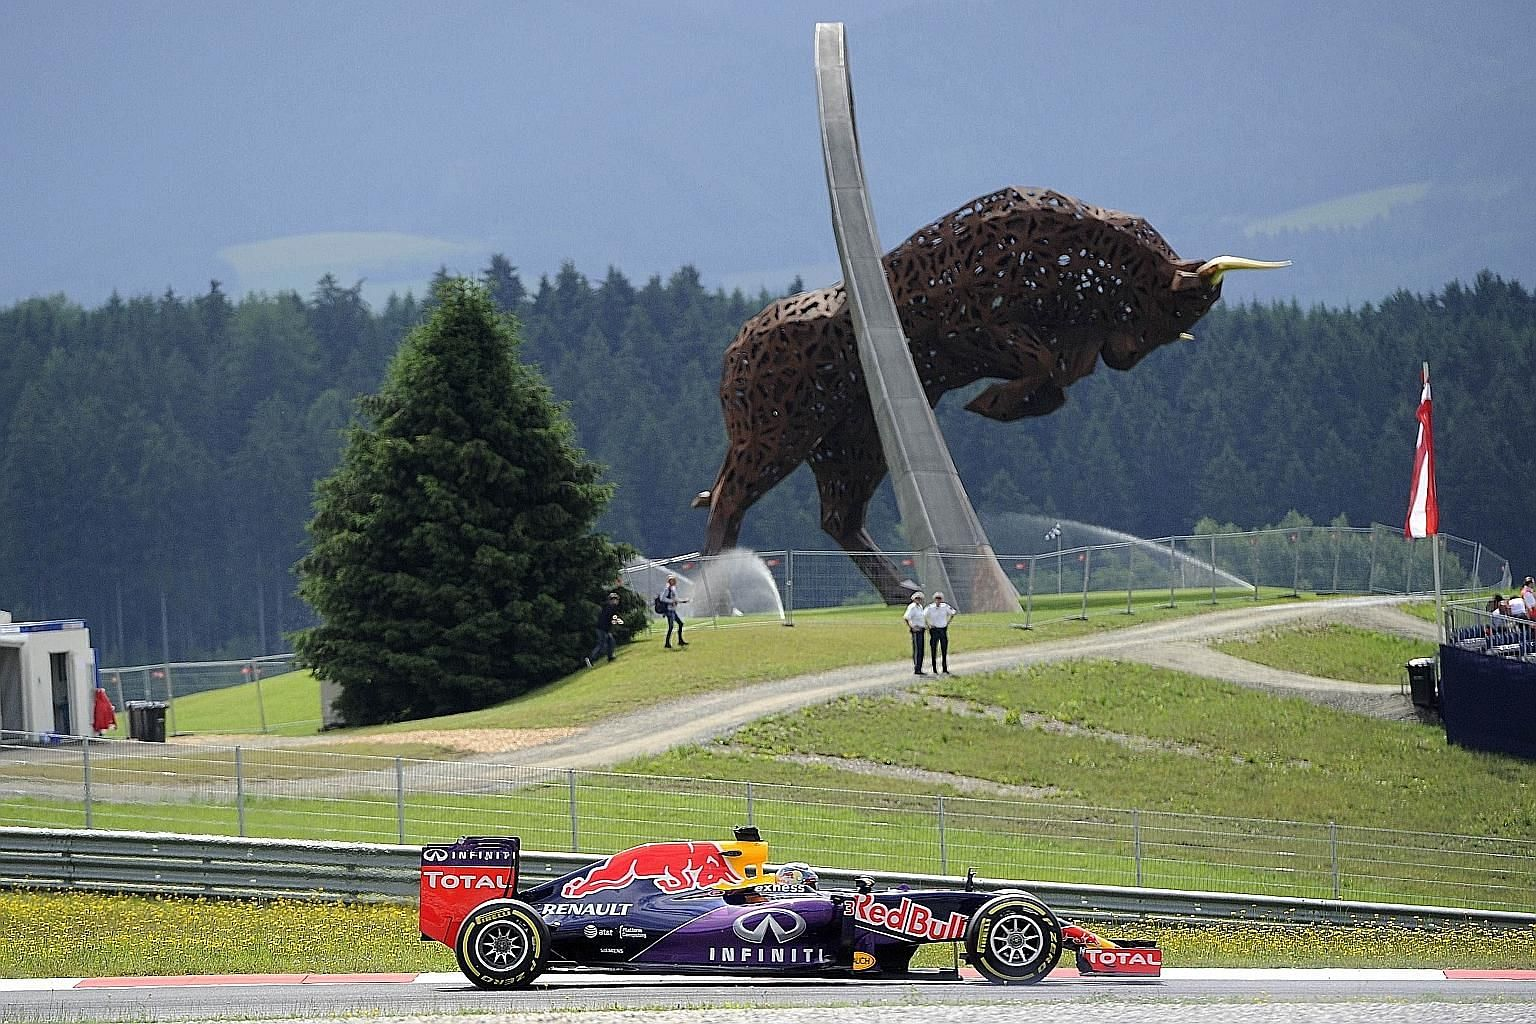 There was little cheer for Red Bull owner Dietrich Mateschitz on Sunday at his home Austrian Grand Prix when Daniel Ricciardo (above) could only finish 10th. The big spender in F1 has threatened to pull out of the sport if there are no changes to the